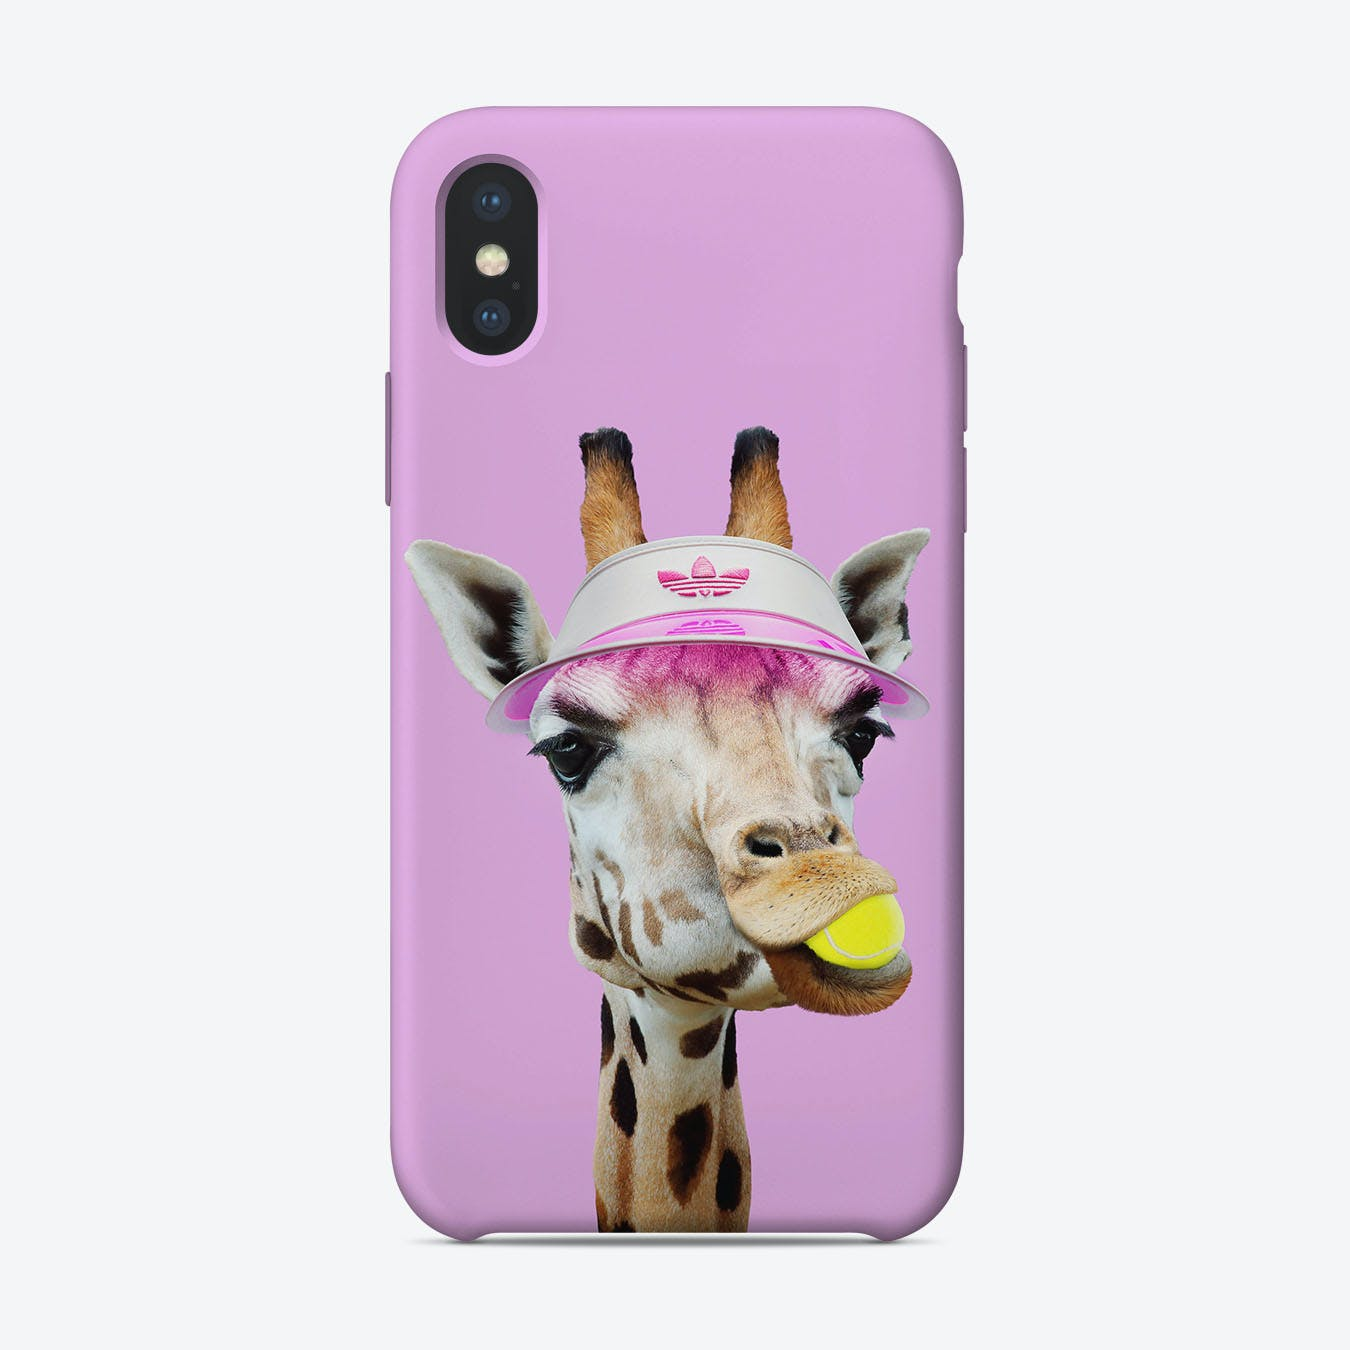 Tennis Giraffe iPhone Case